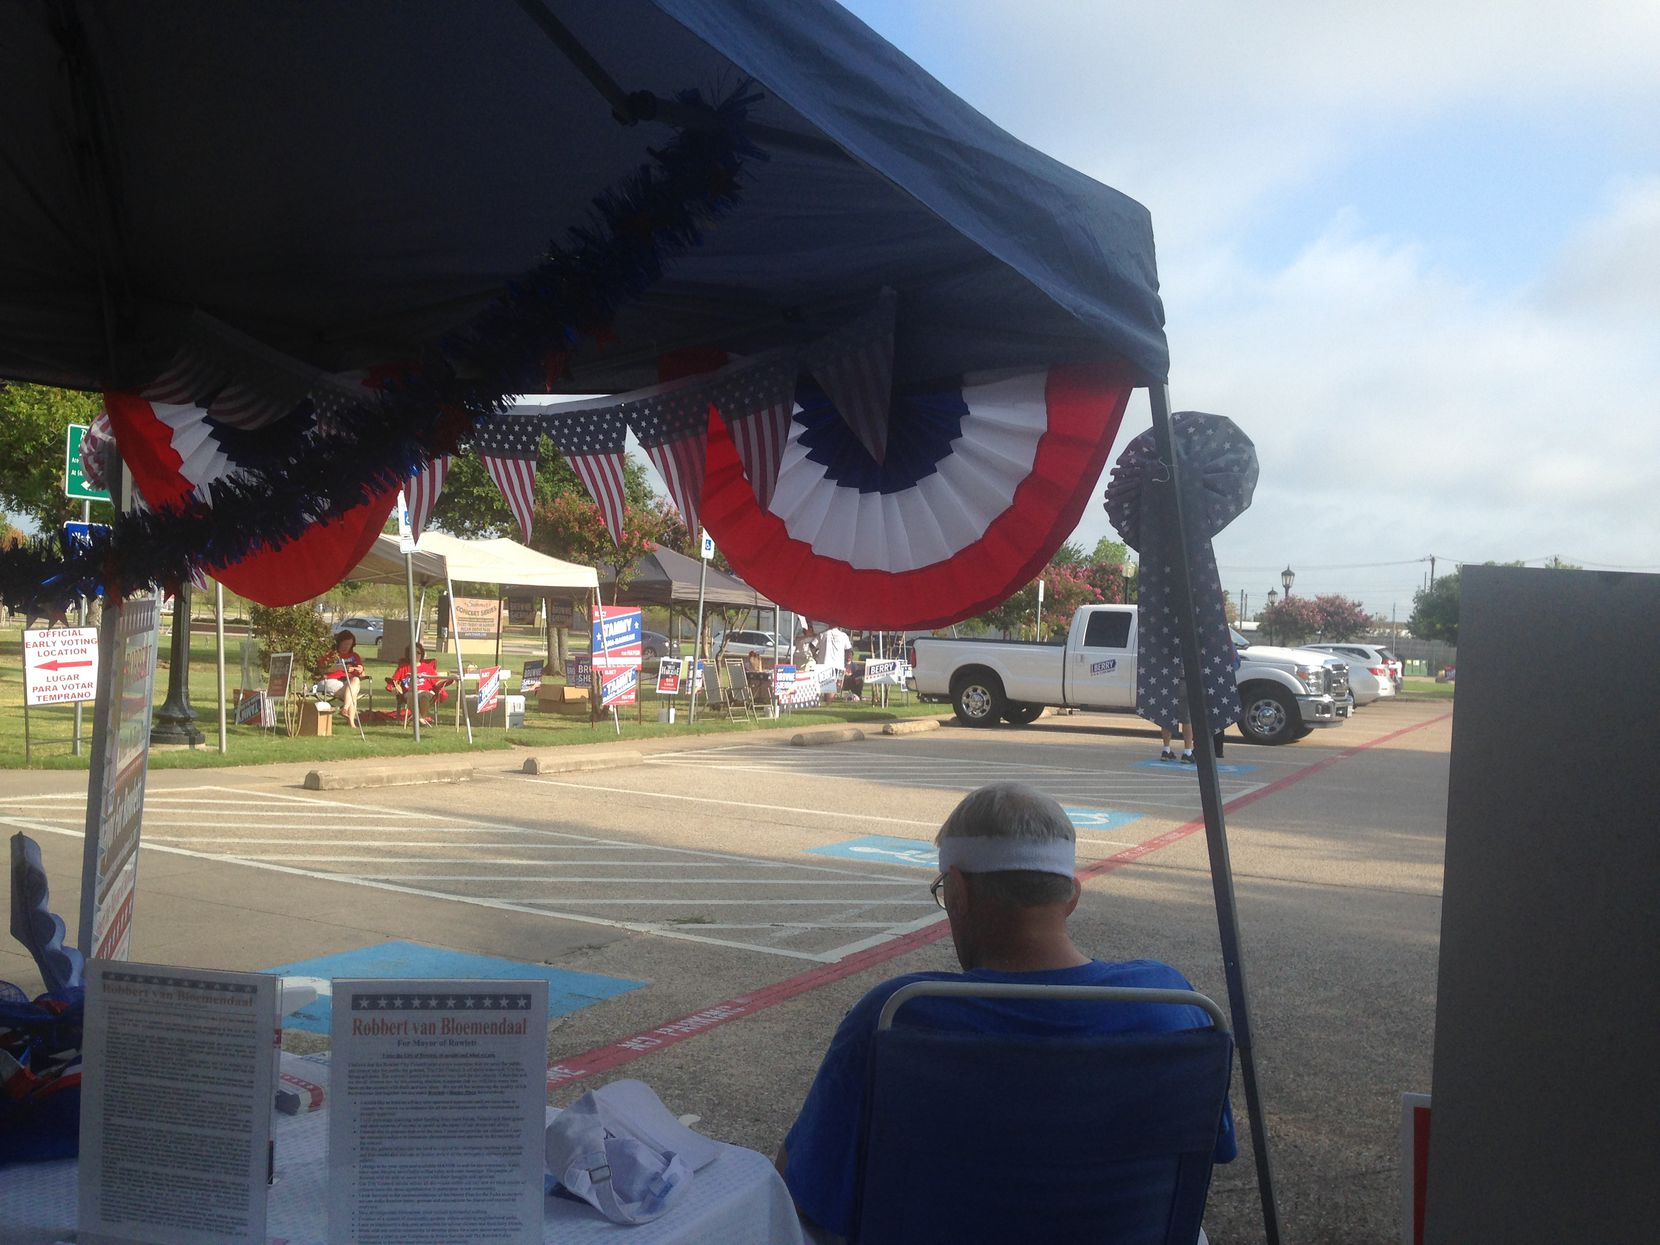 About half the candidates in Rowlett's Aug. 26 special election have set up camp outside the lone polling place, the Municipal Building Annex. By lunchtime on Wednesday, the first day polls were open, more than 100 had voted.